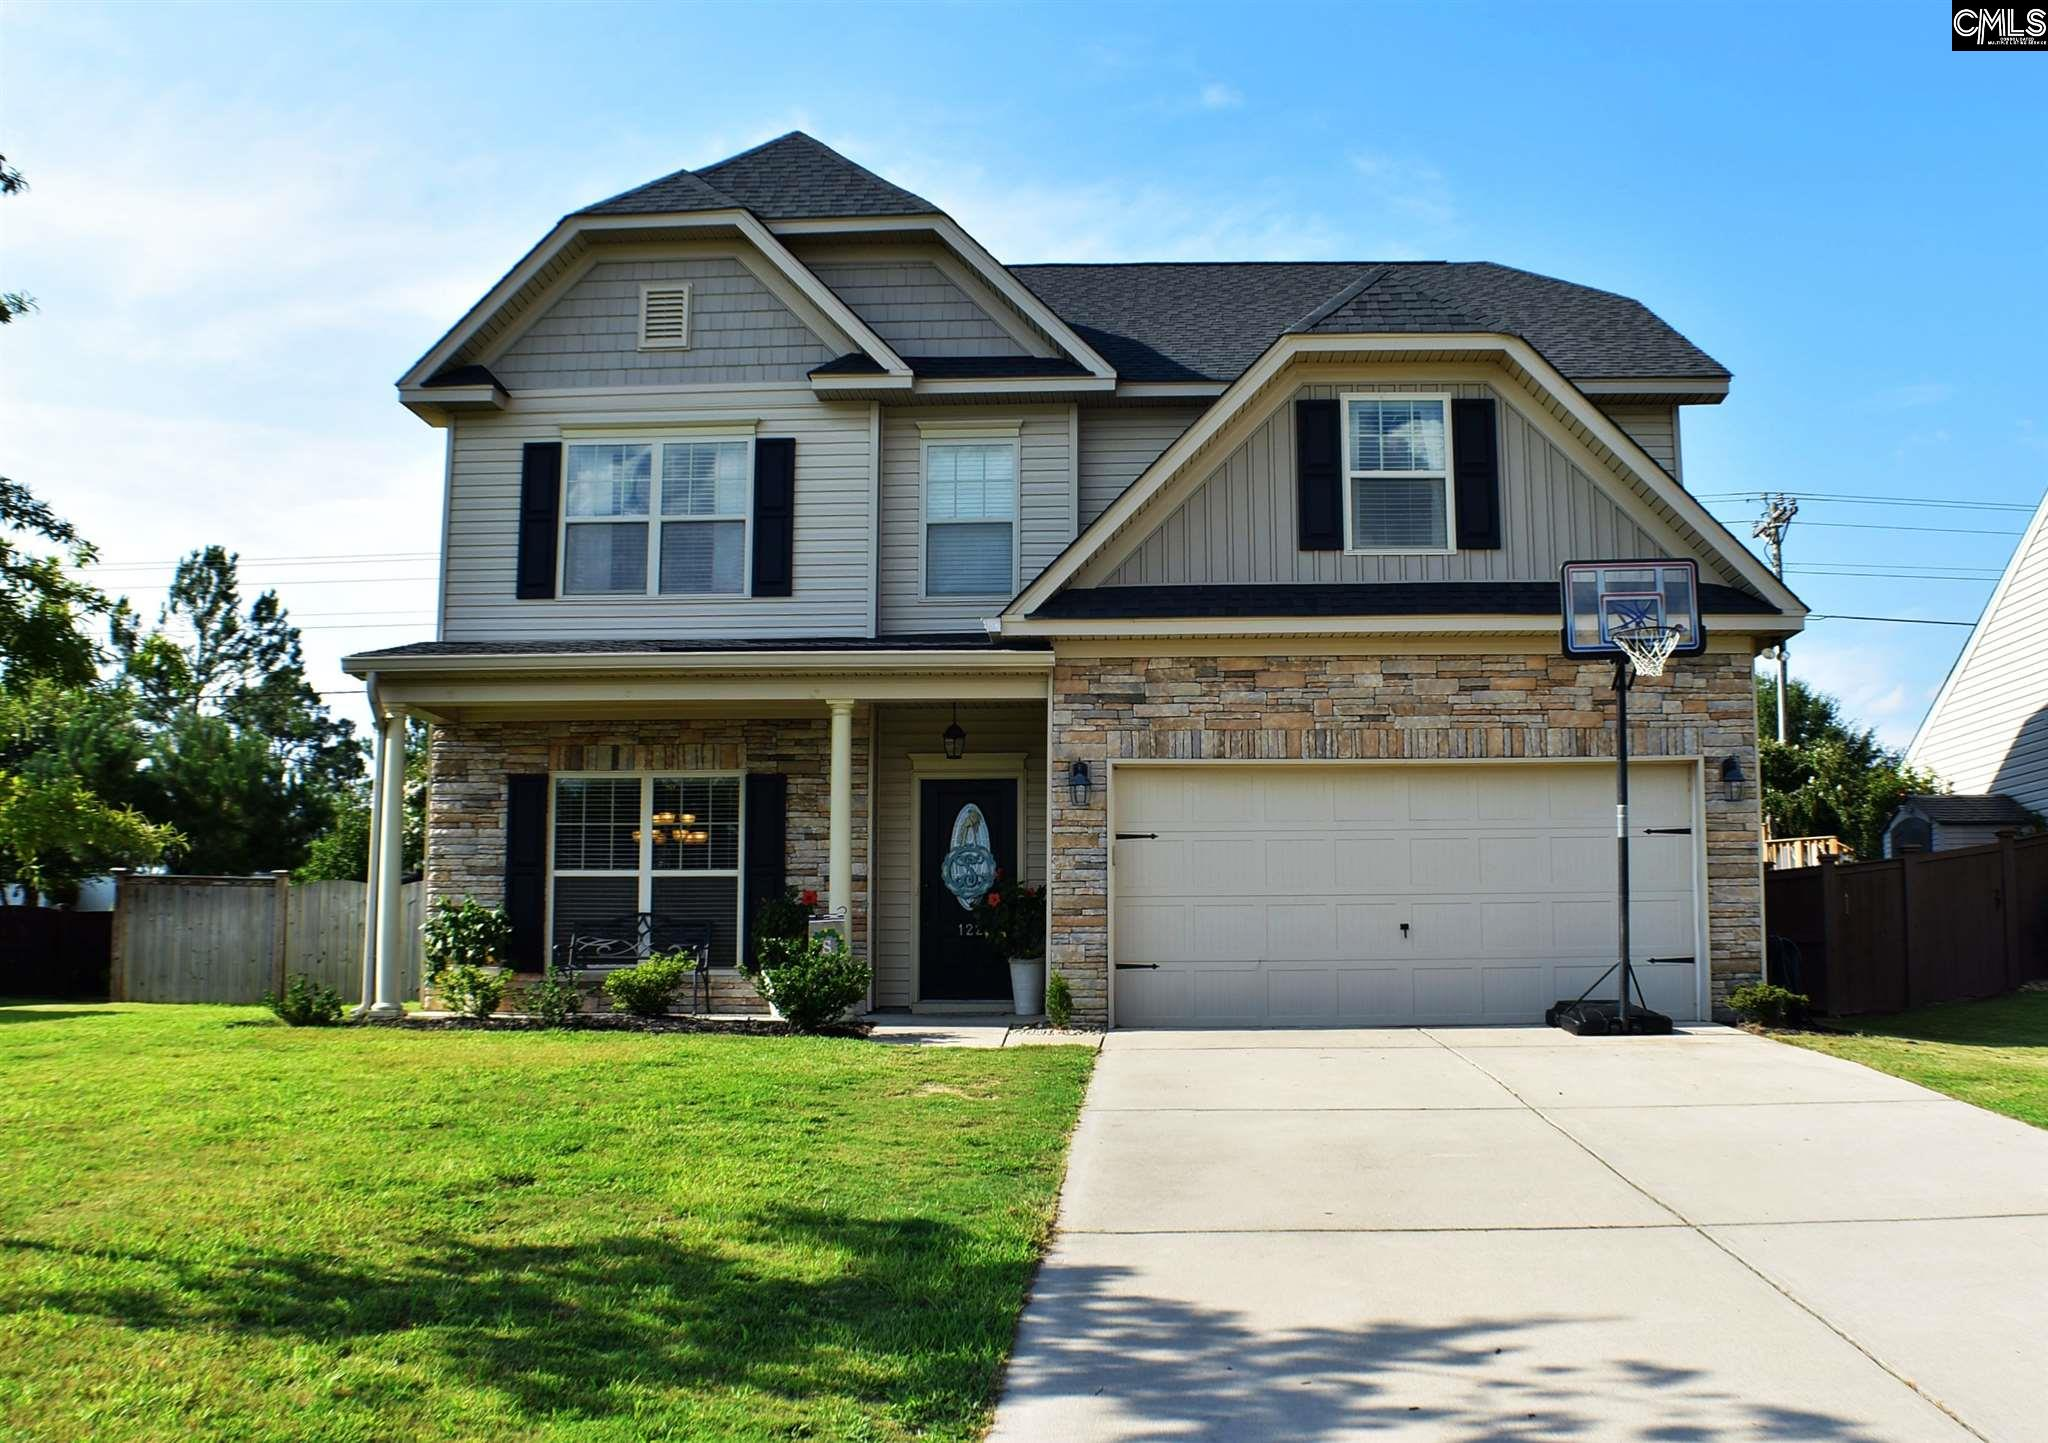 122 Harvest Hill Lexington, SC 29072